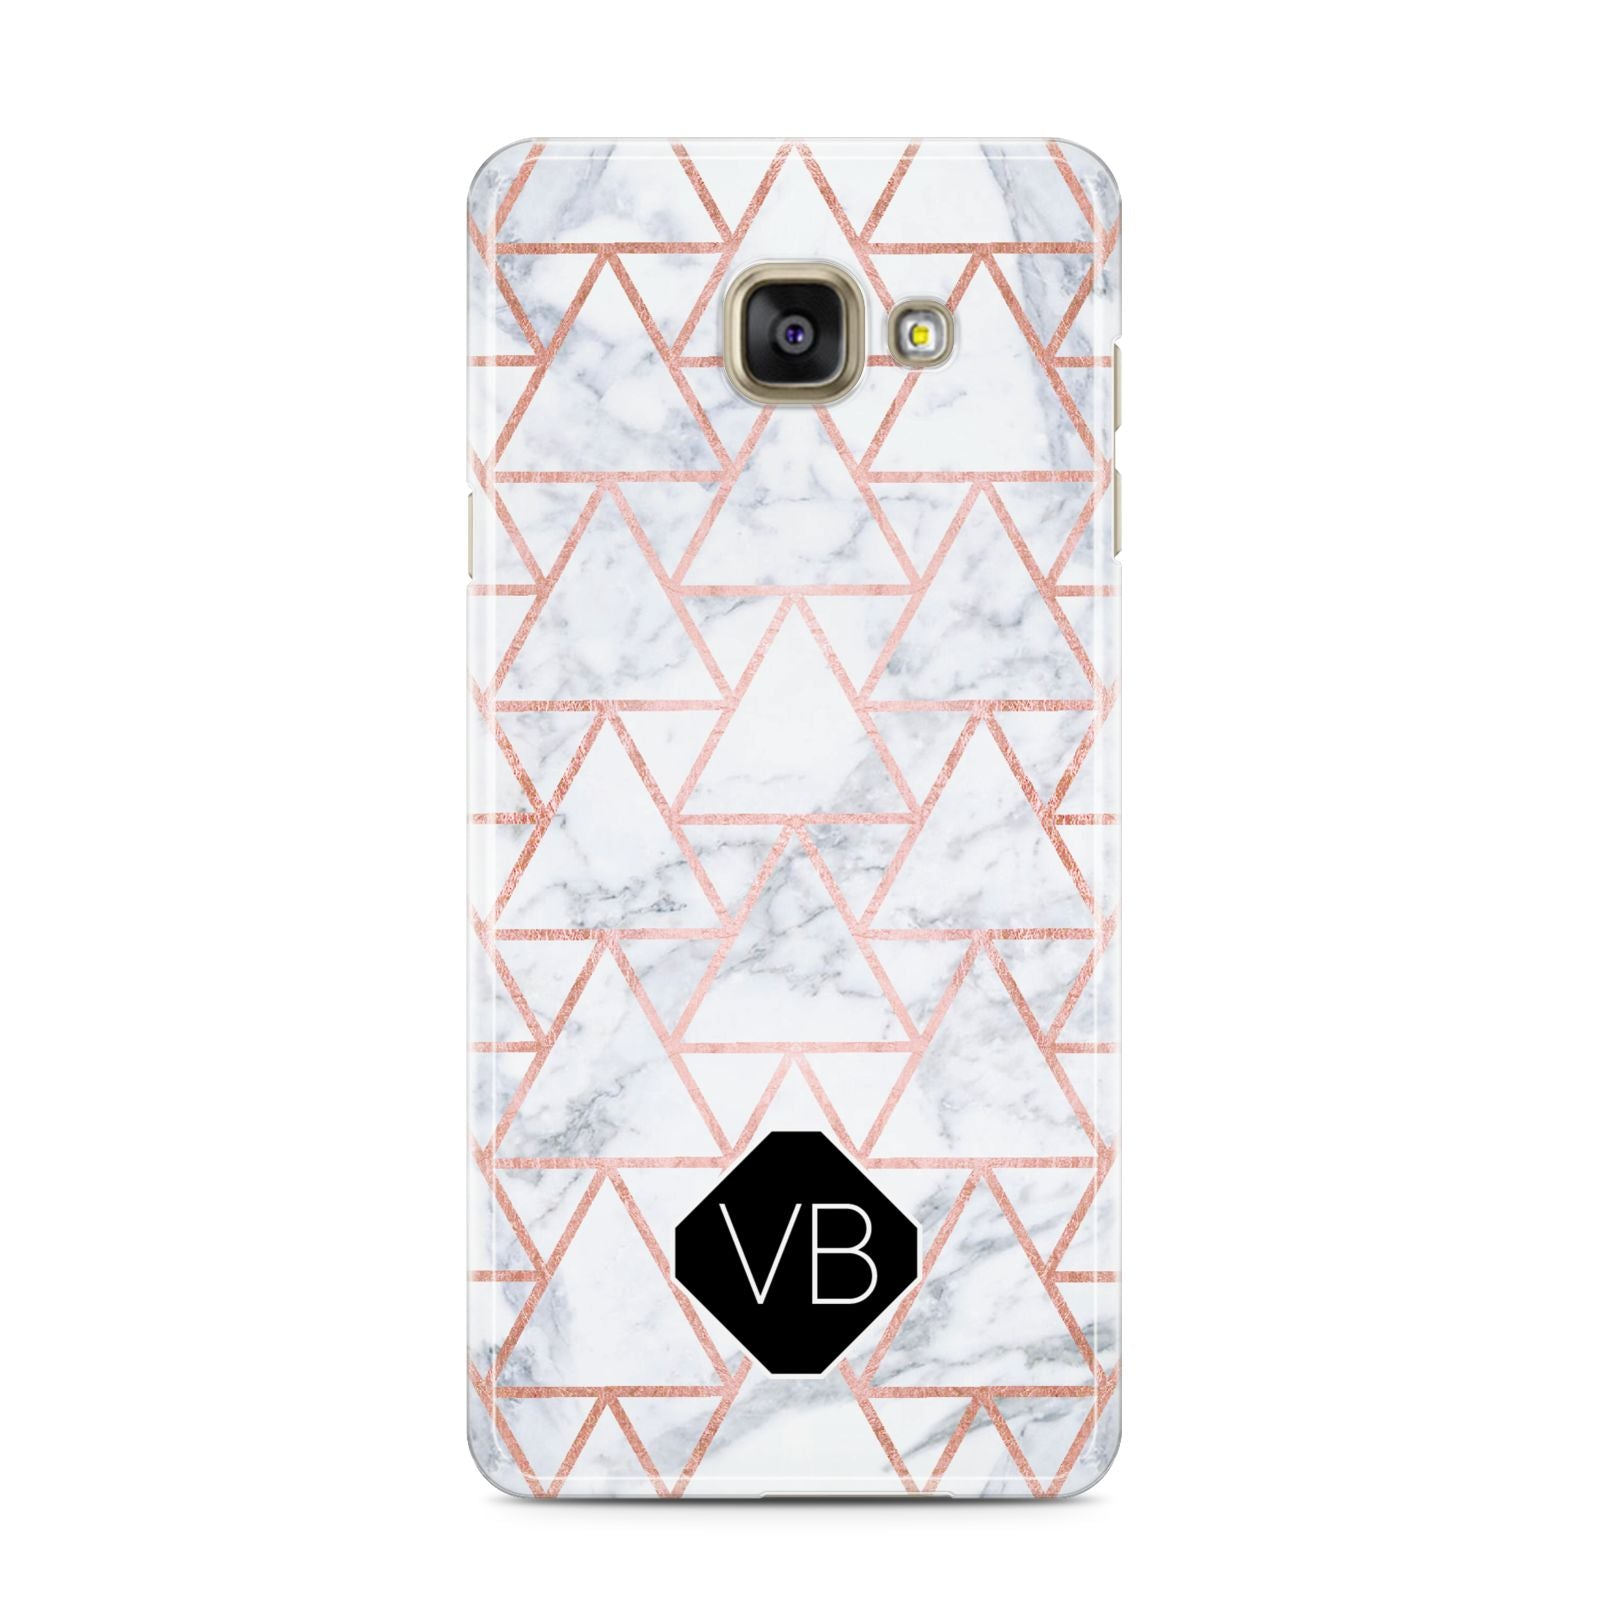 Personalised Rose Gold Grey Marble Hexagon Samsung Galaxy A3 2016 Case on gold phone